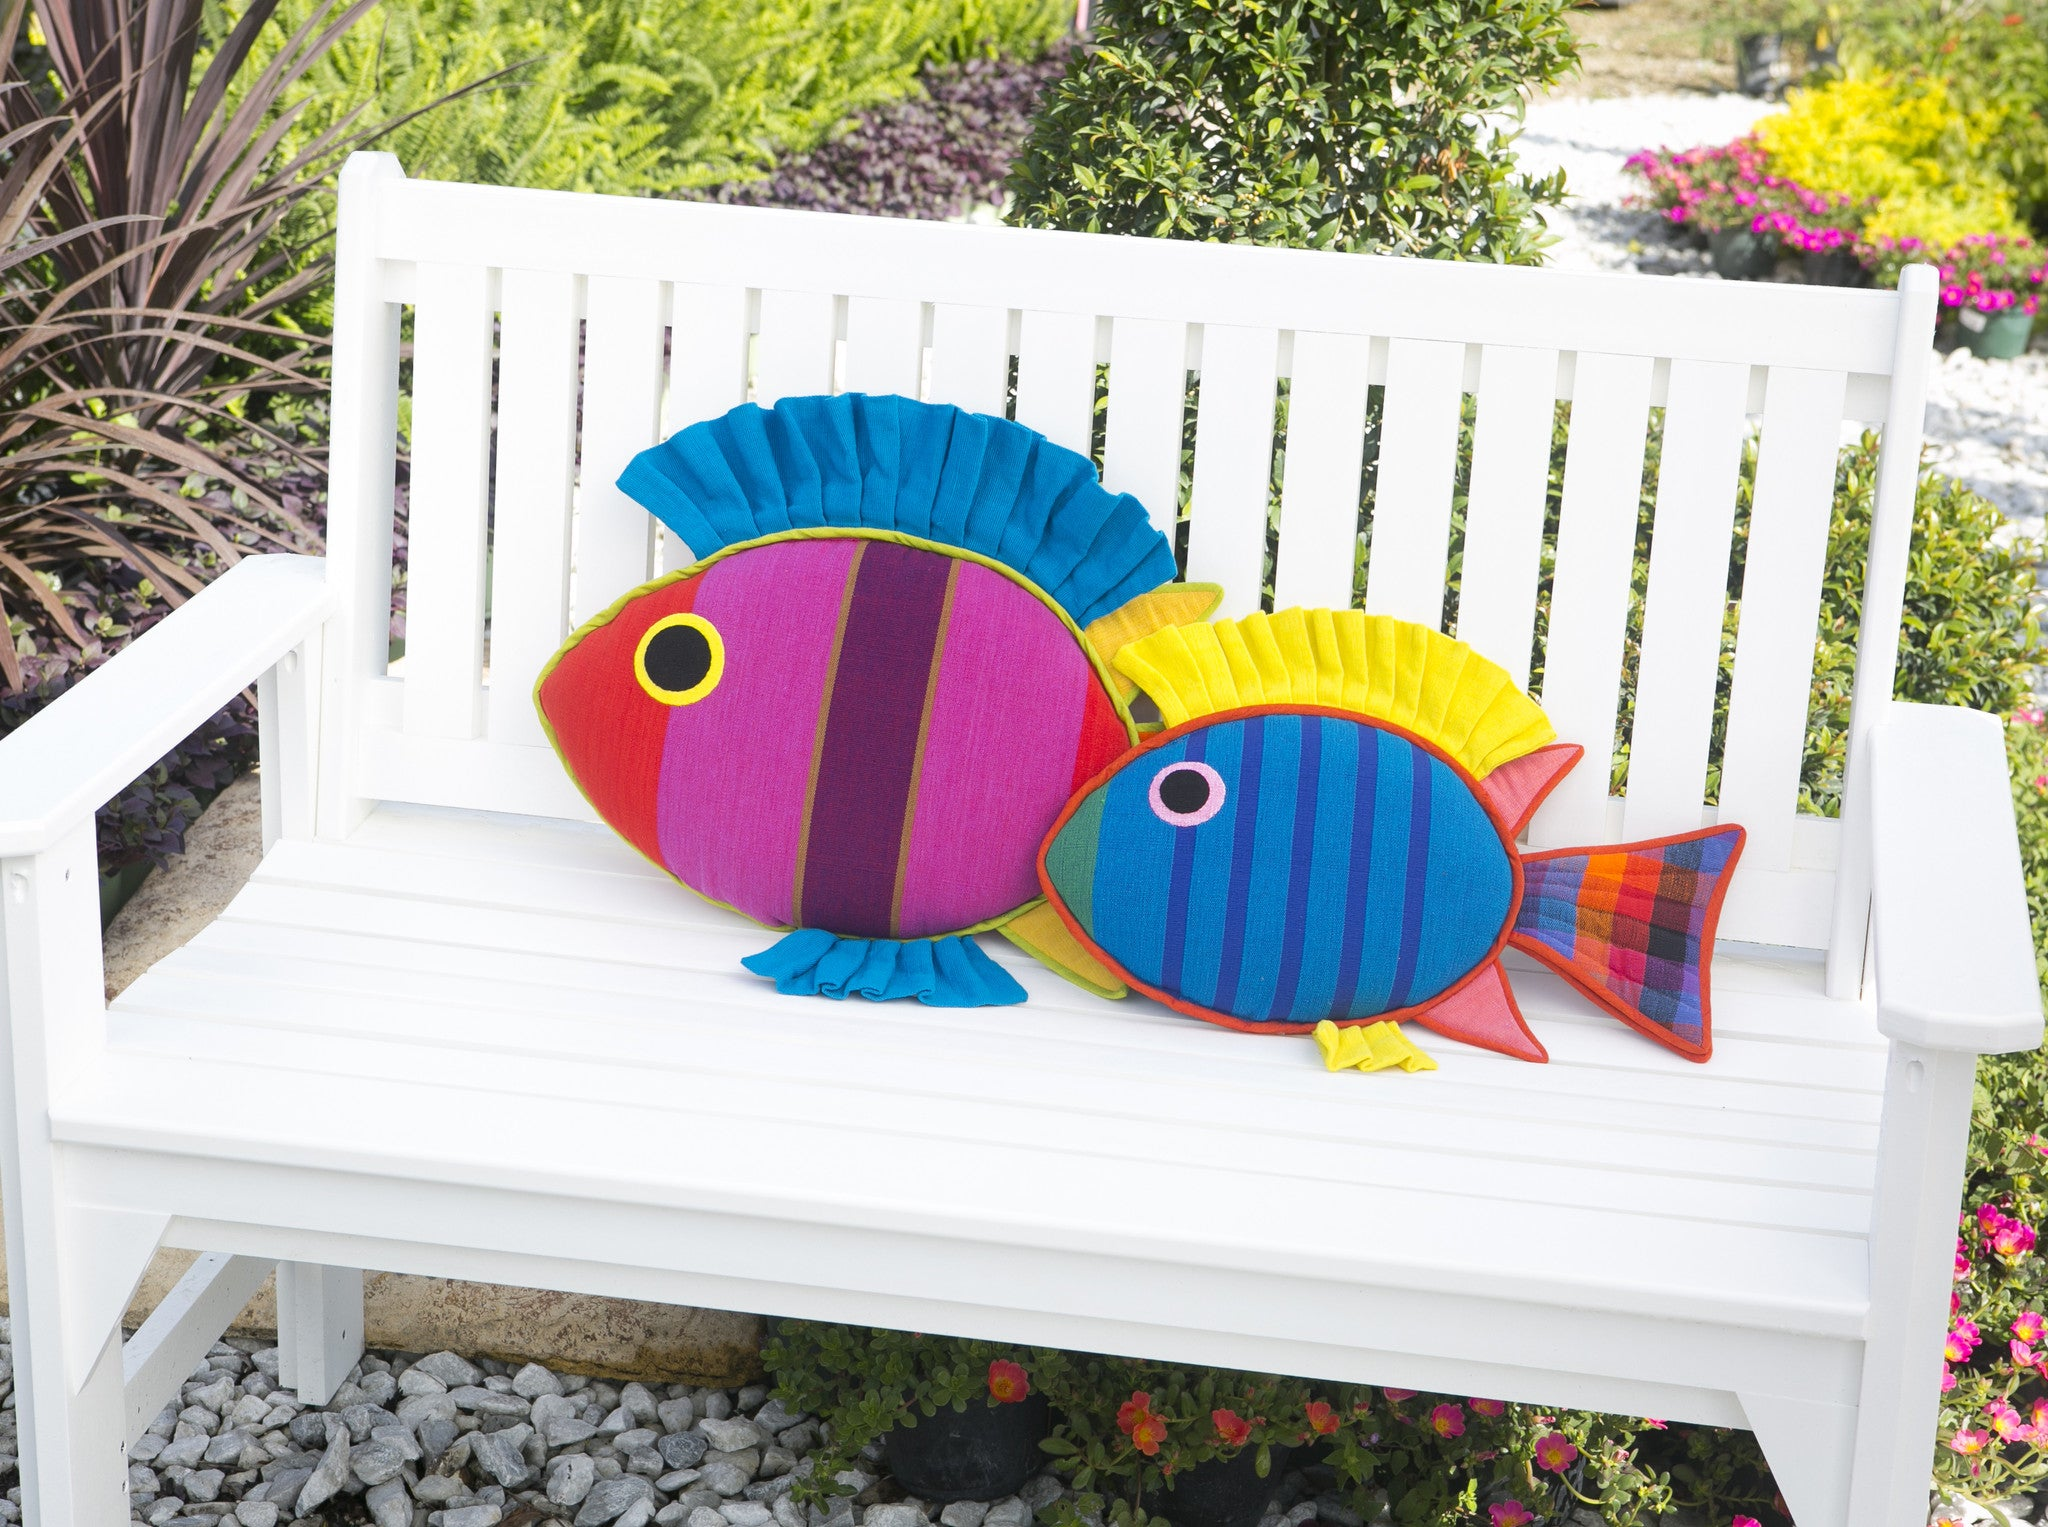 The Rabbit Fish – Adding the perfect punch of color! (Mindy shown in large size & Sammy in small size)